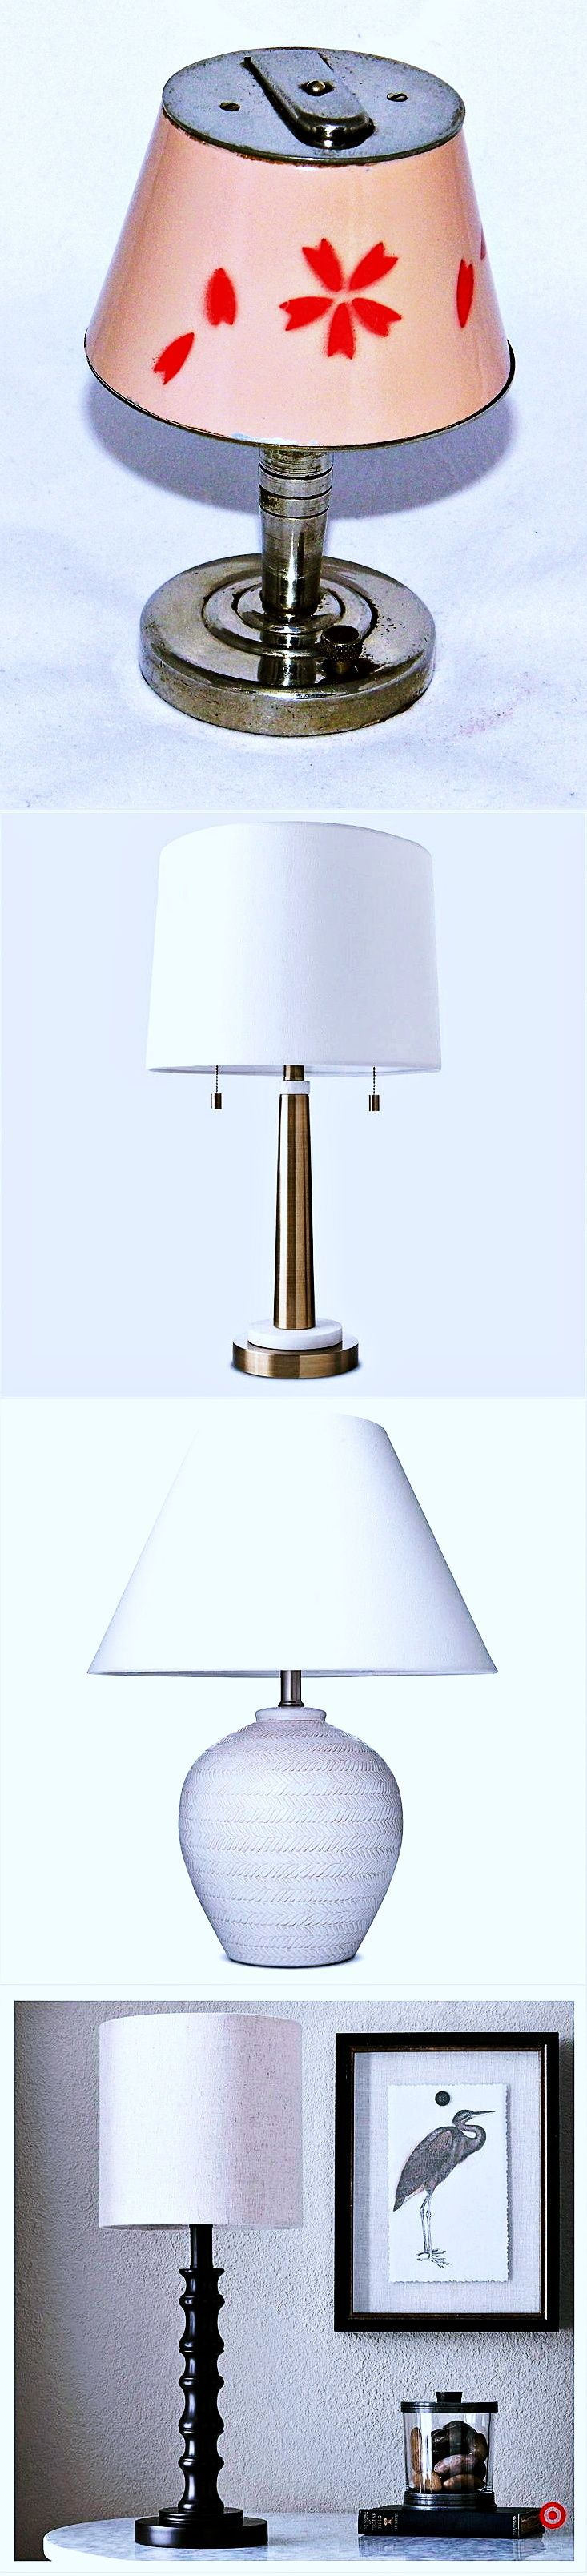 Tall Slim Lamp Table The Best Turquoisetablelamp Smallwhitetablelamp Smallwhitetablelamp Tablelamps Small White Table Lamp Turquoise Table Lamp Lamp